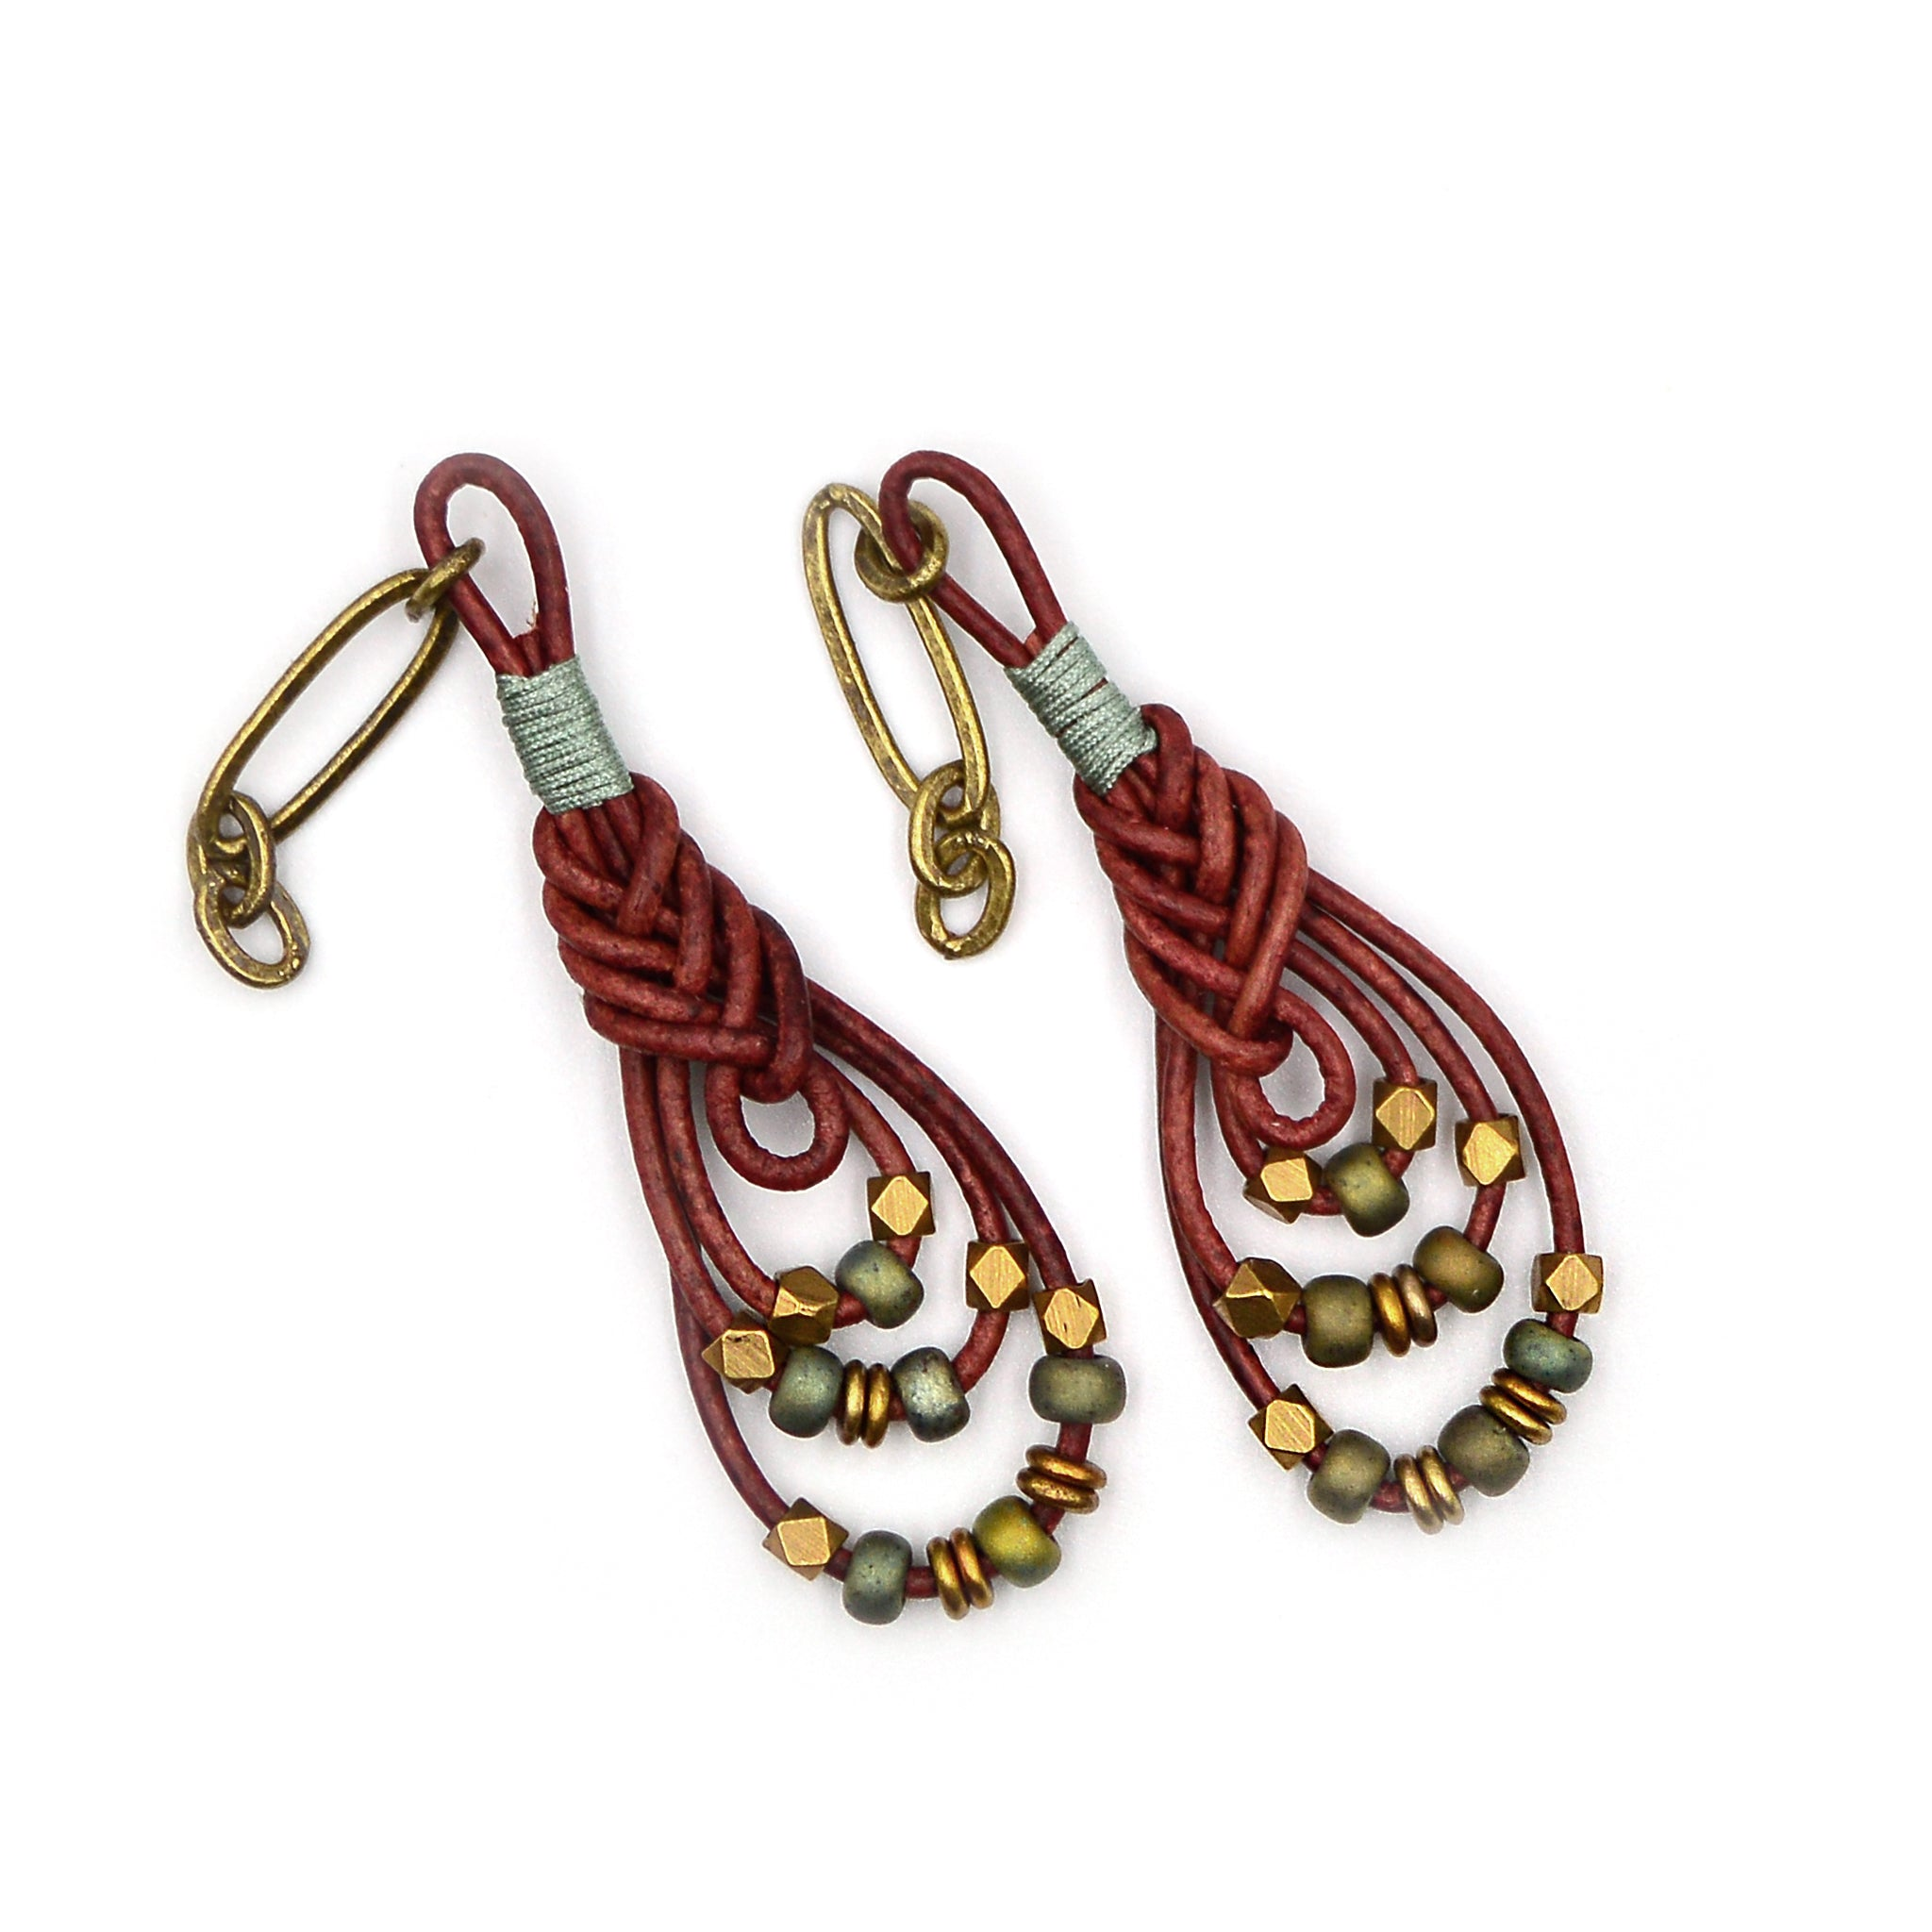 Teardrop Knot Earrings